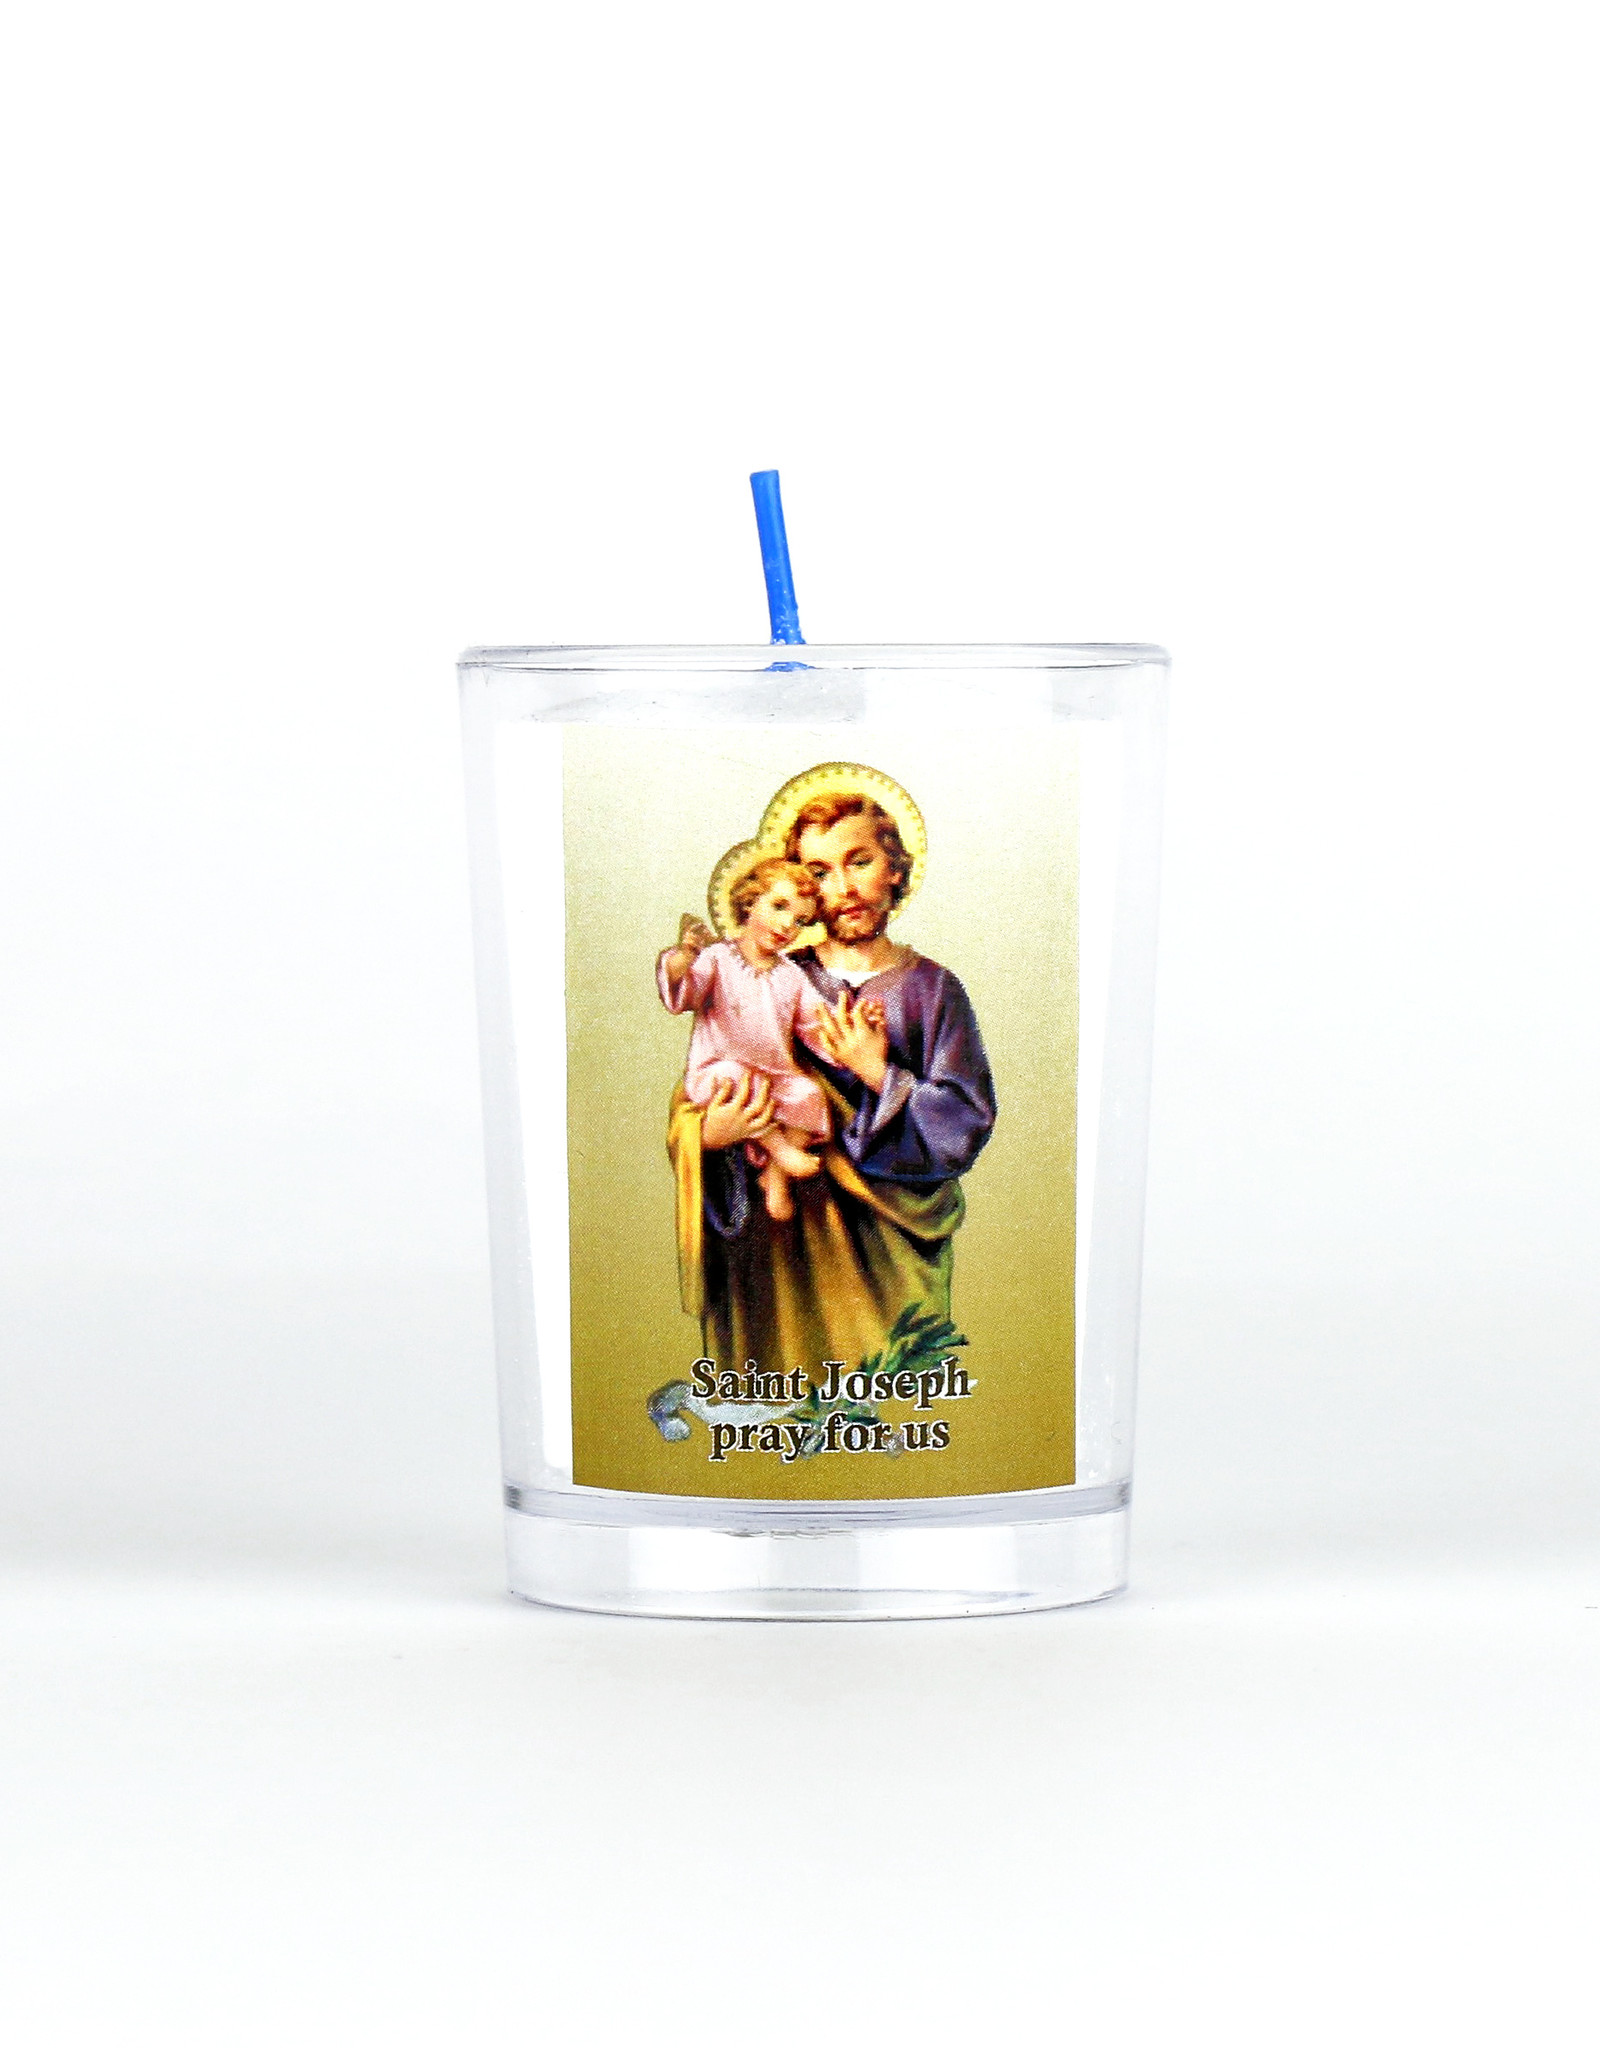 Chandelles Tradition / Tradition Candles Saint Joseph votive candle